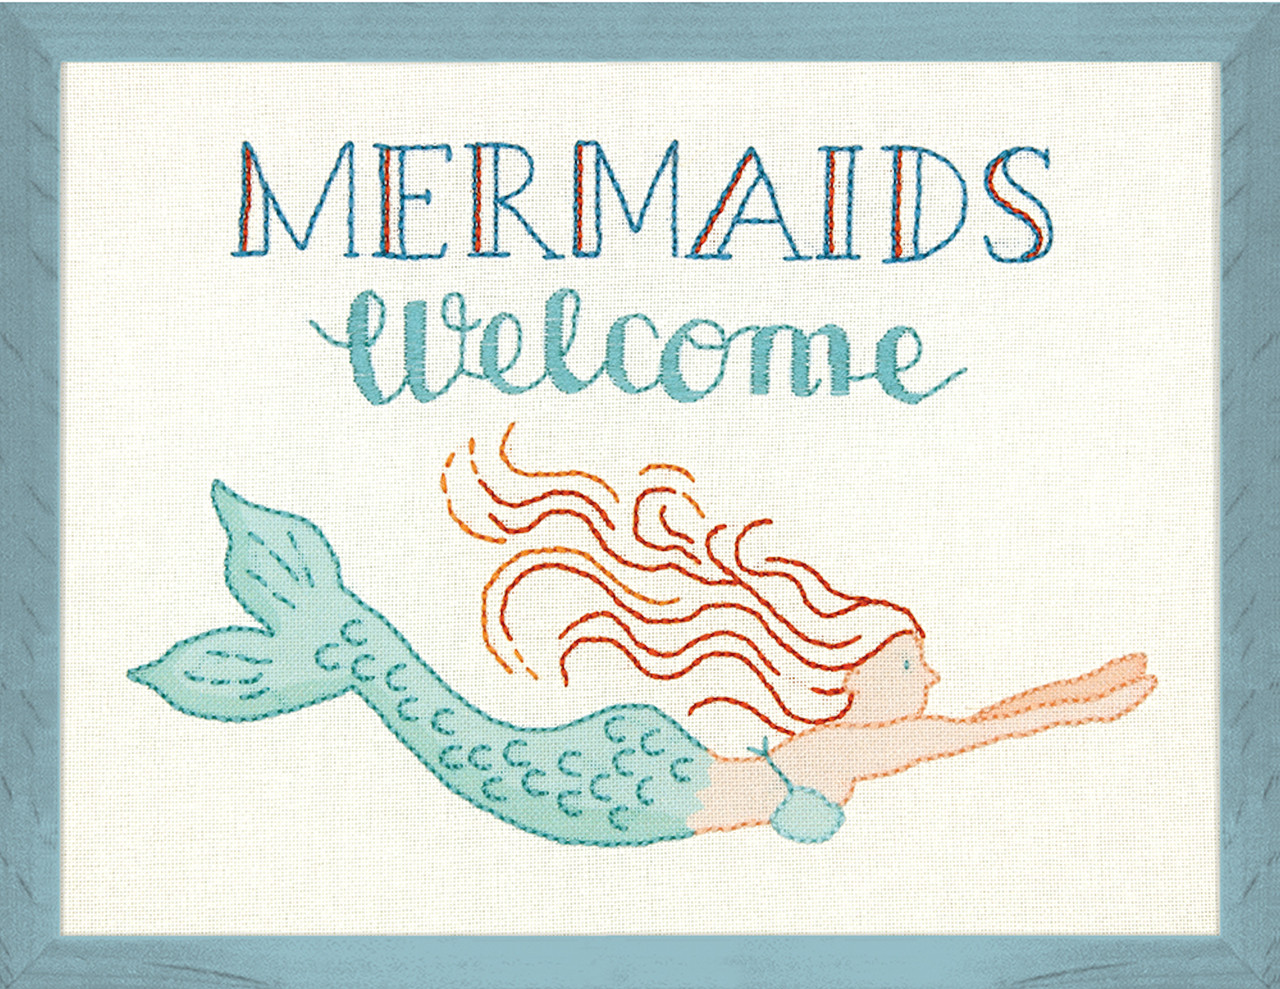 Dimensions - Mermaids Welcome Picture or Pillow